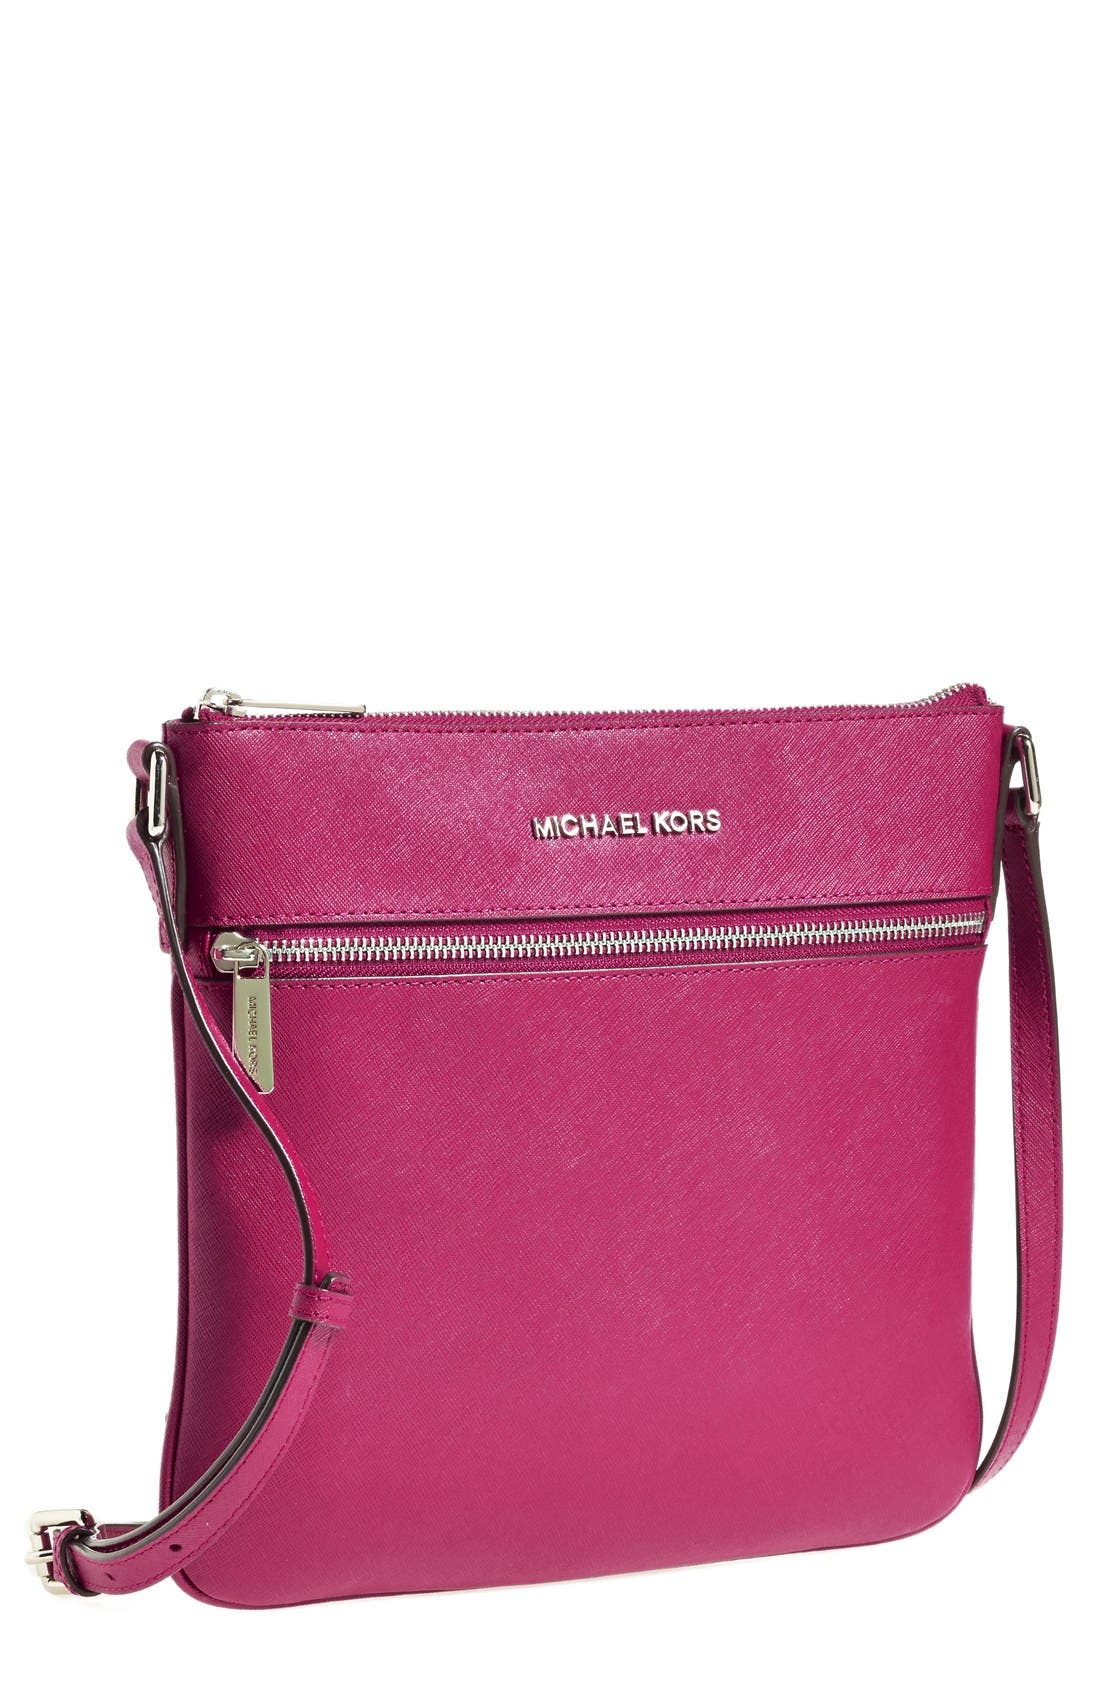 Alternate Image 1 Selected - MICHAEL Michael Kors 'Bedford' Saffiano Leather Crossbody Bag (Nordstrom Exclusive)